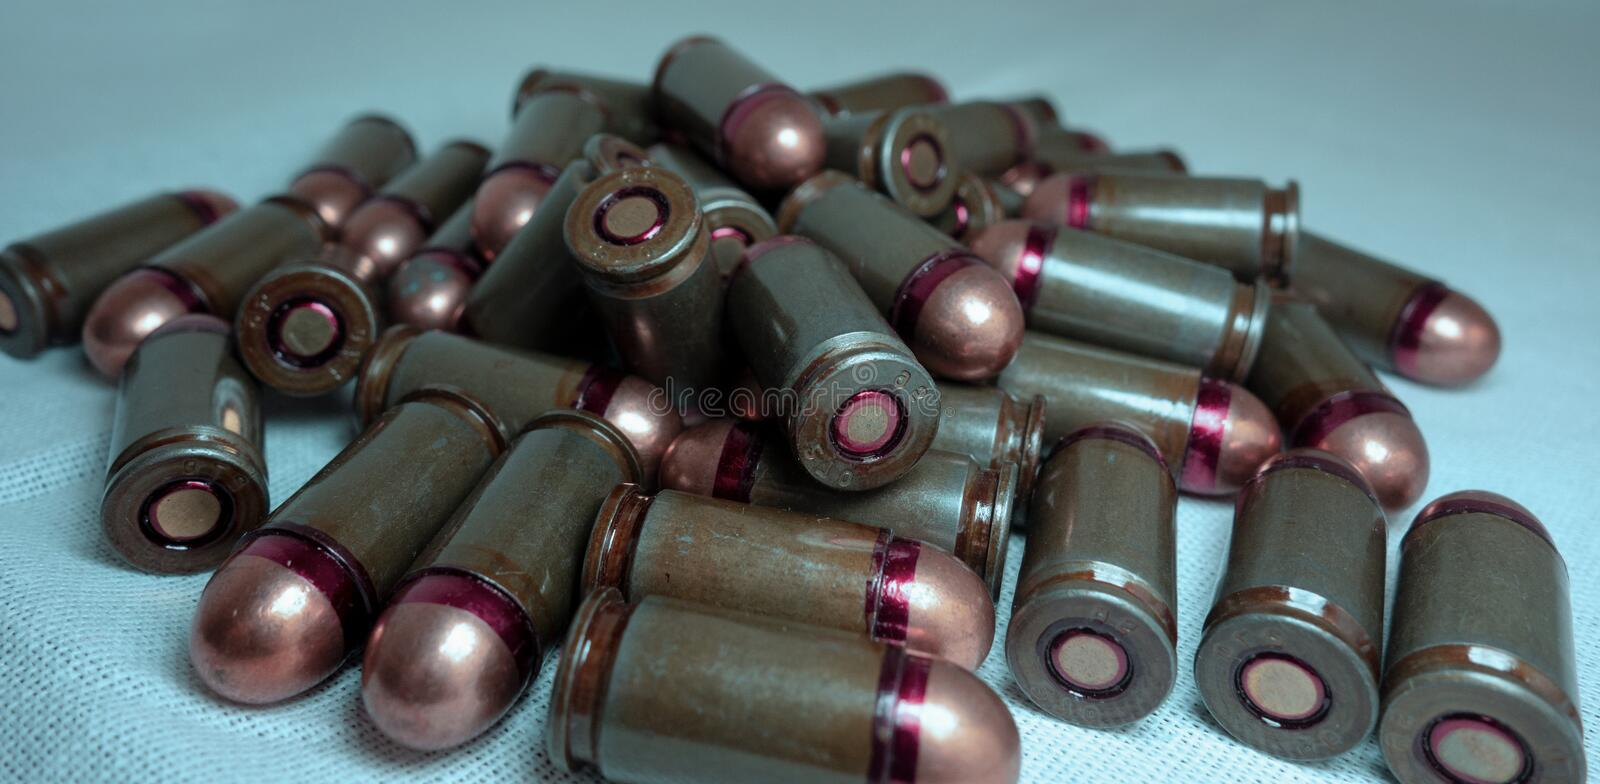 Cartridges bulk close up images. Bullets in shells for gun are piled randomly. Weapon armory concept royalty free stock photos